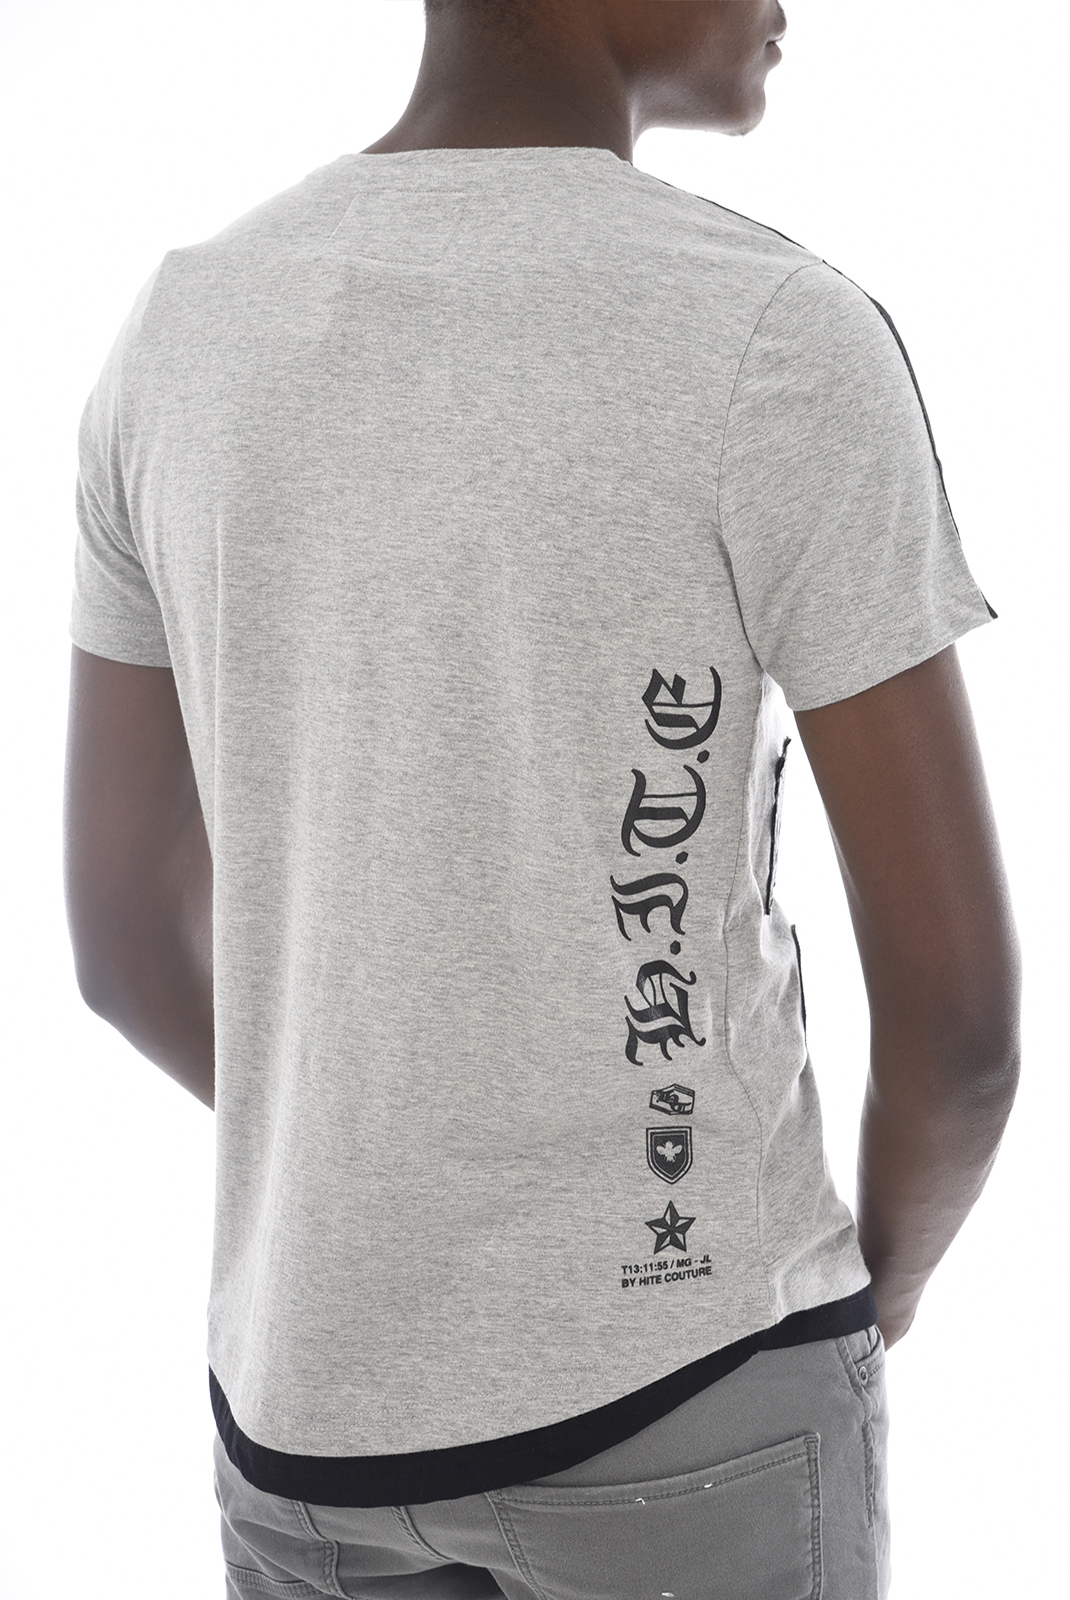 Tee-shirts  Hite couture MOBIER GREY